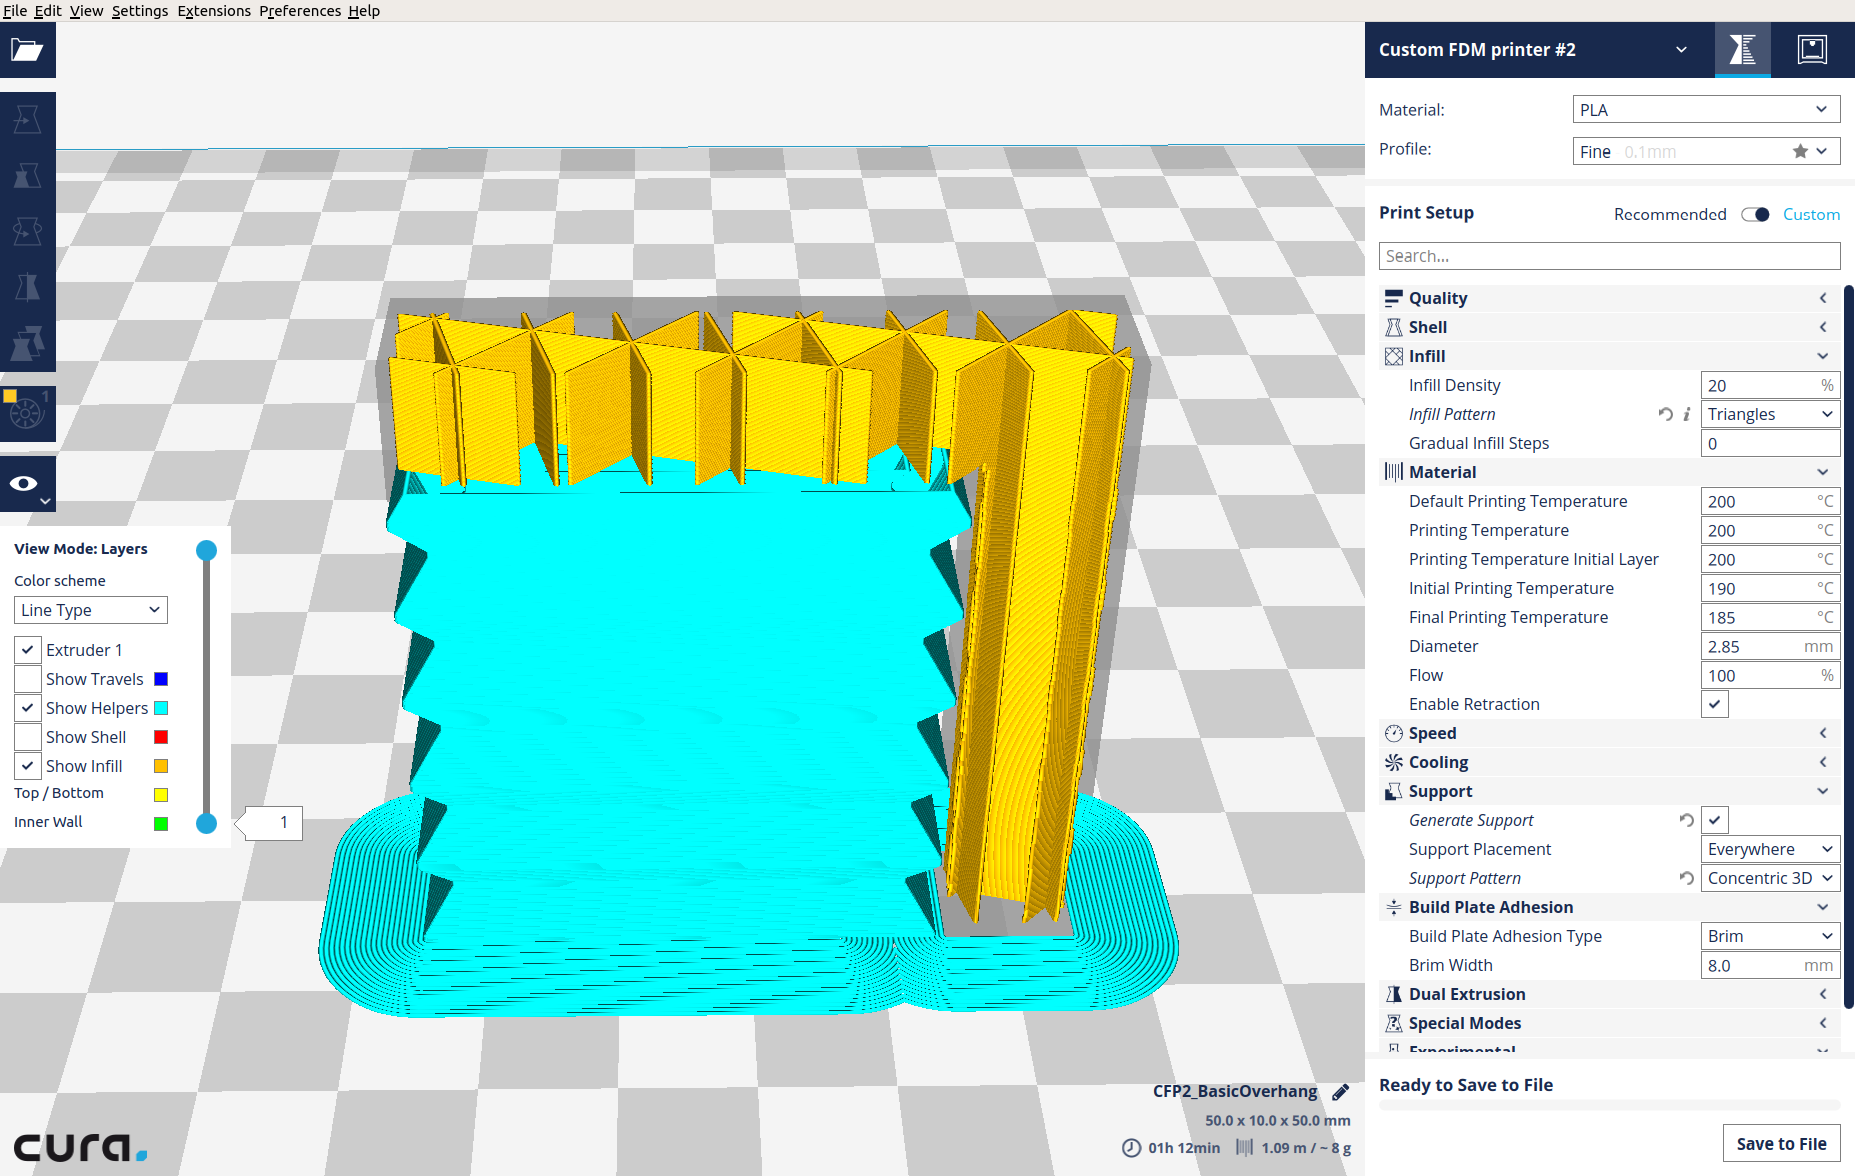 Cura 2 6 infill and support do not change from the default